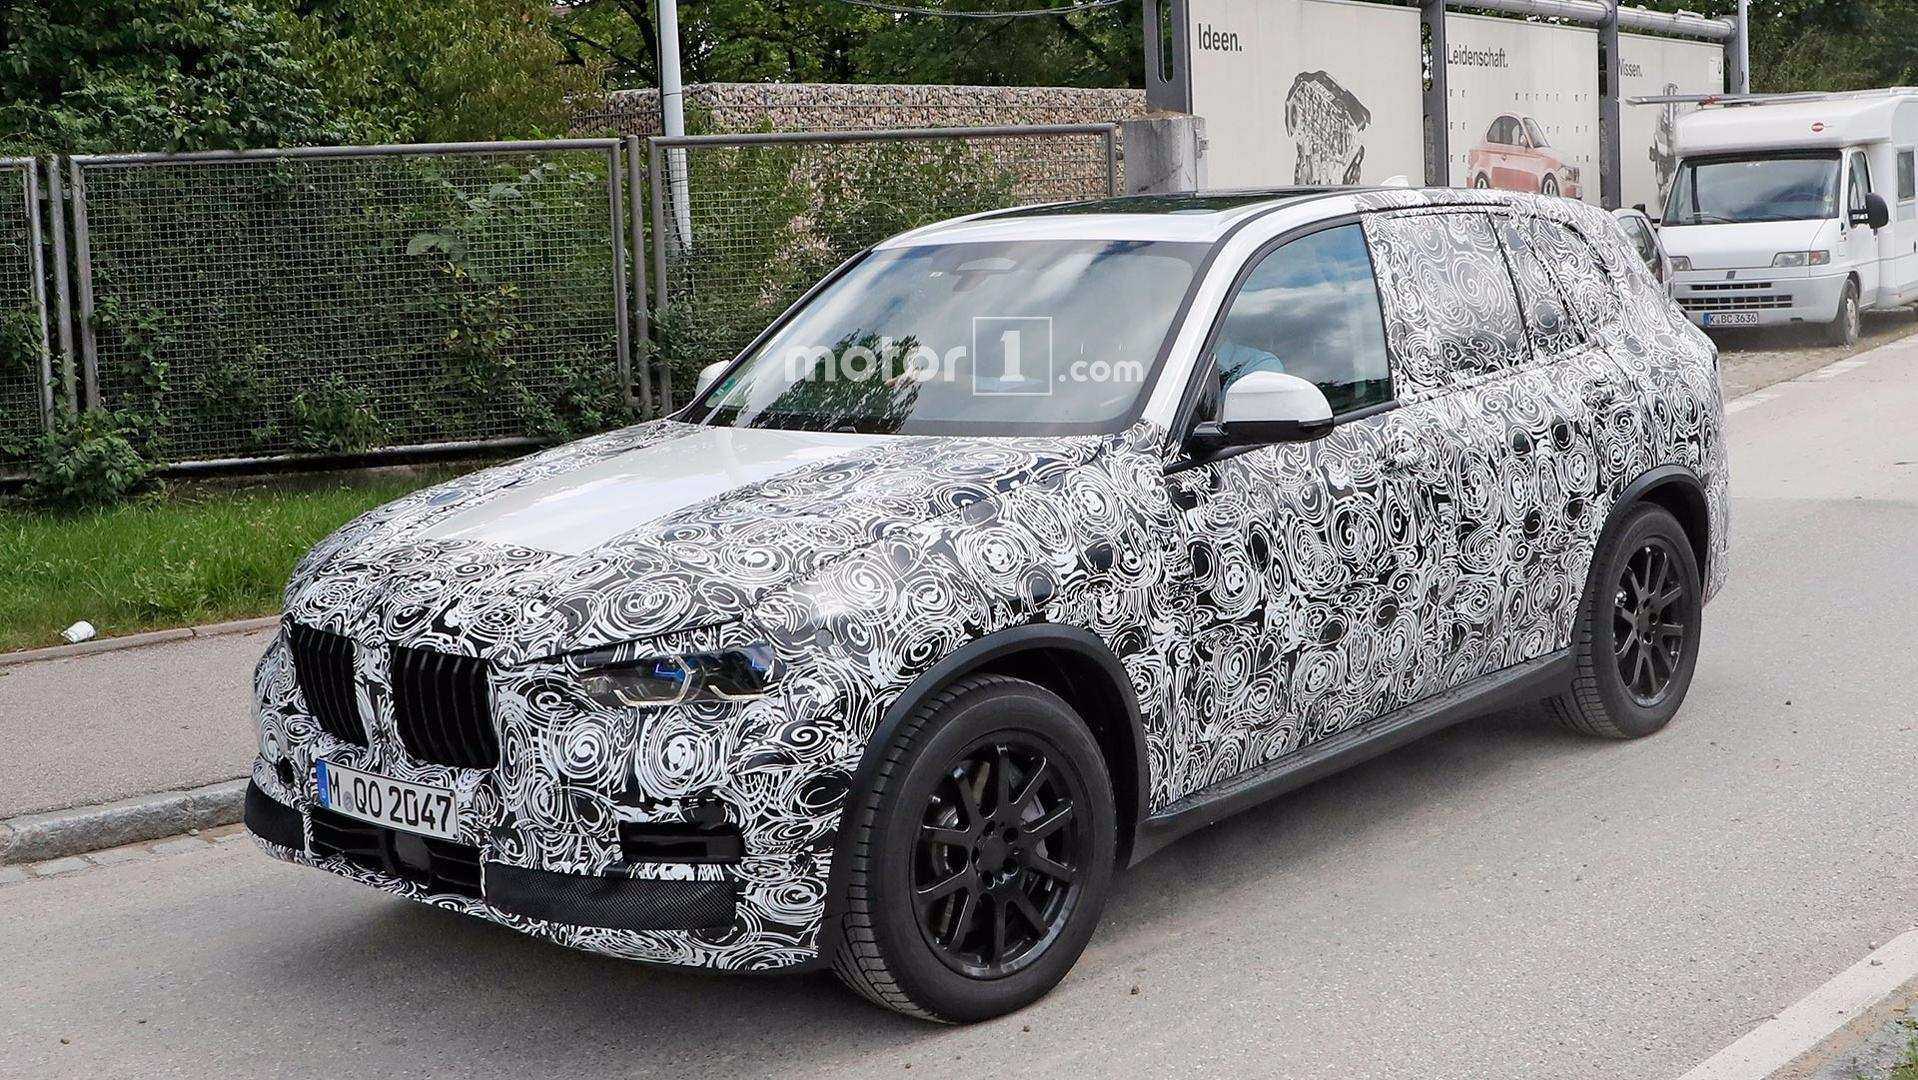 46 The Next Gen BMW X5 Suv Review And Release Date